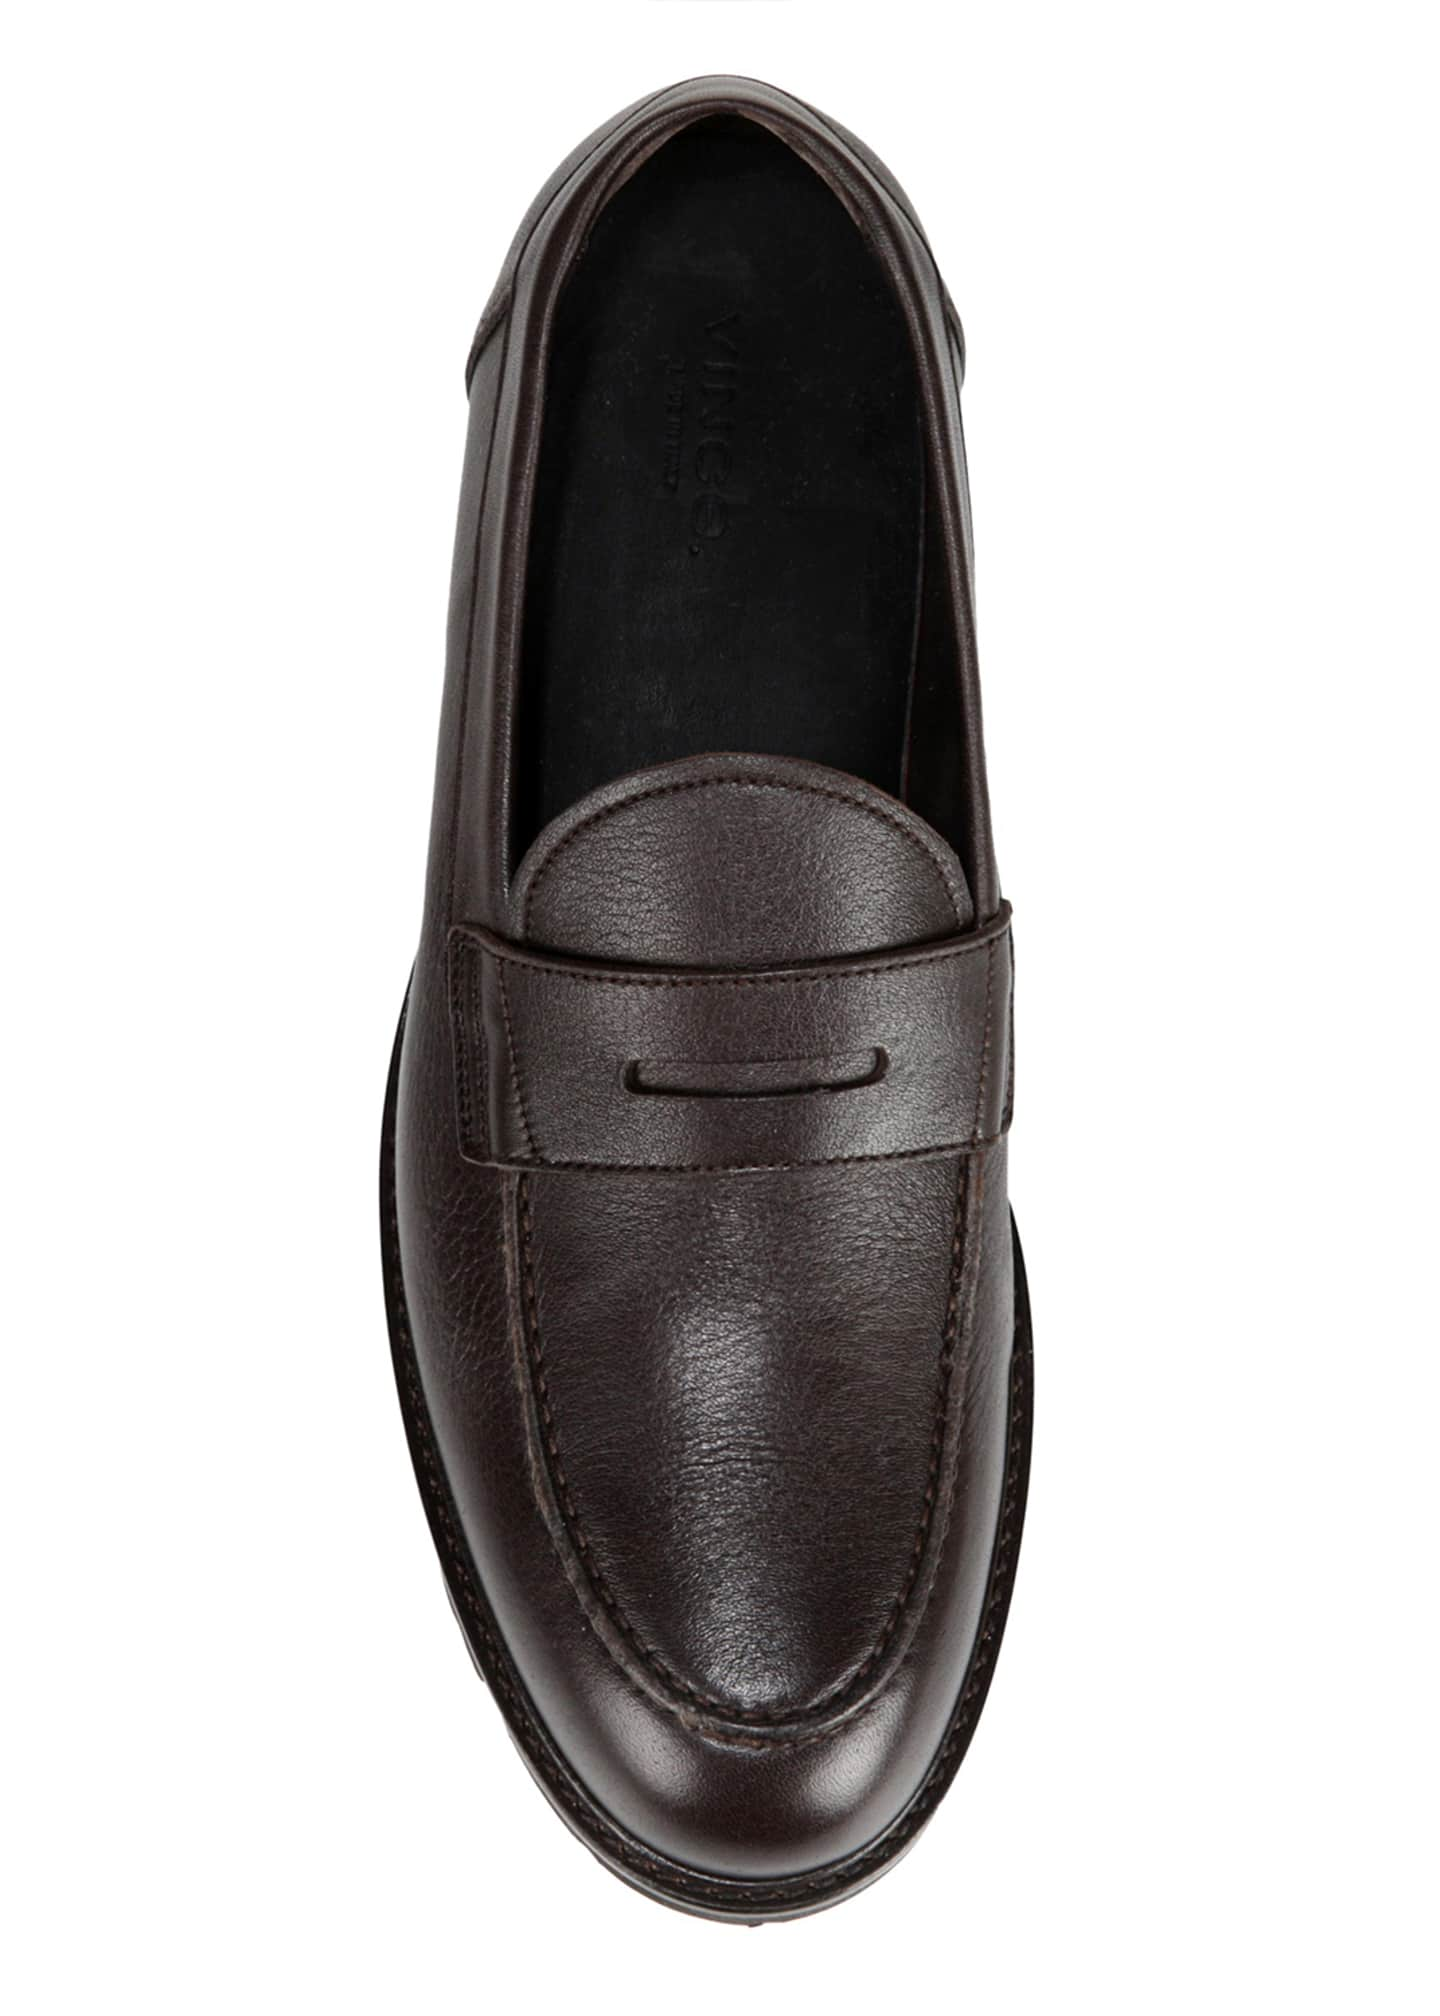 Image 4 of 5: Men's Comrade Leather Lug-Sole Penny Loafers